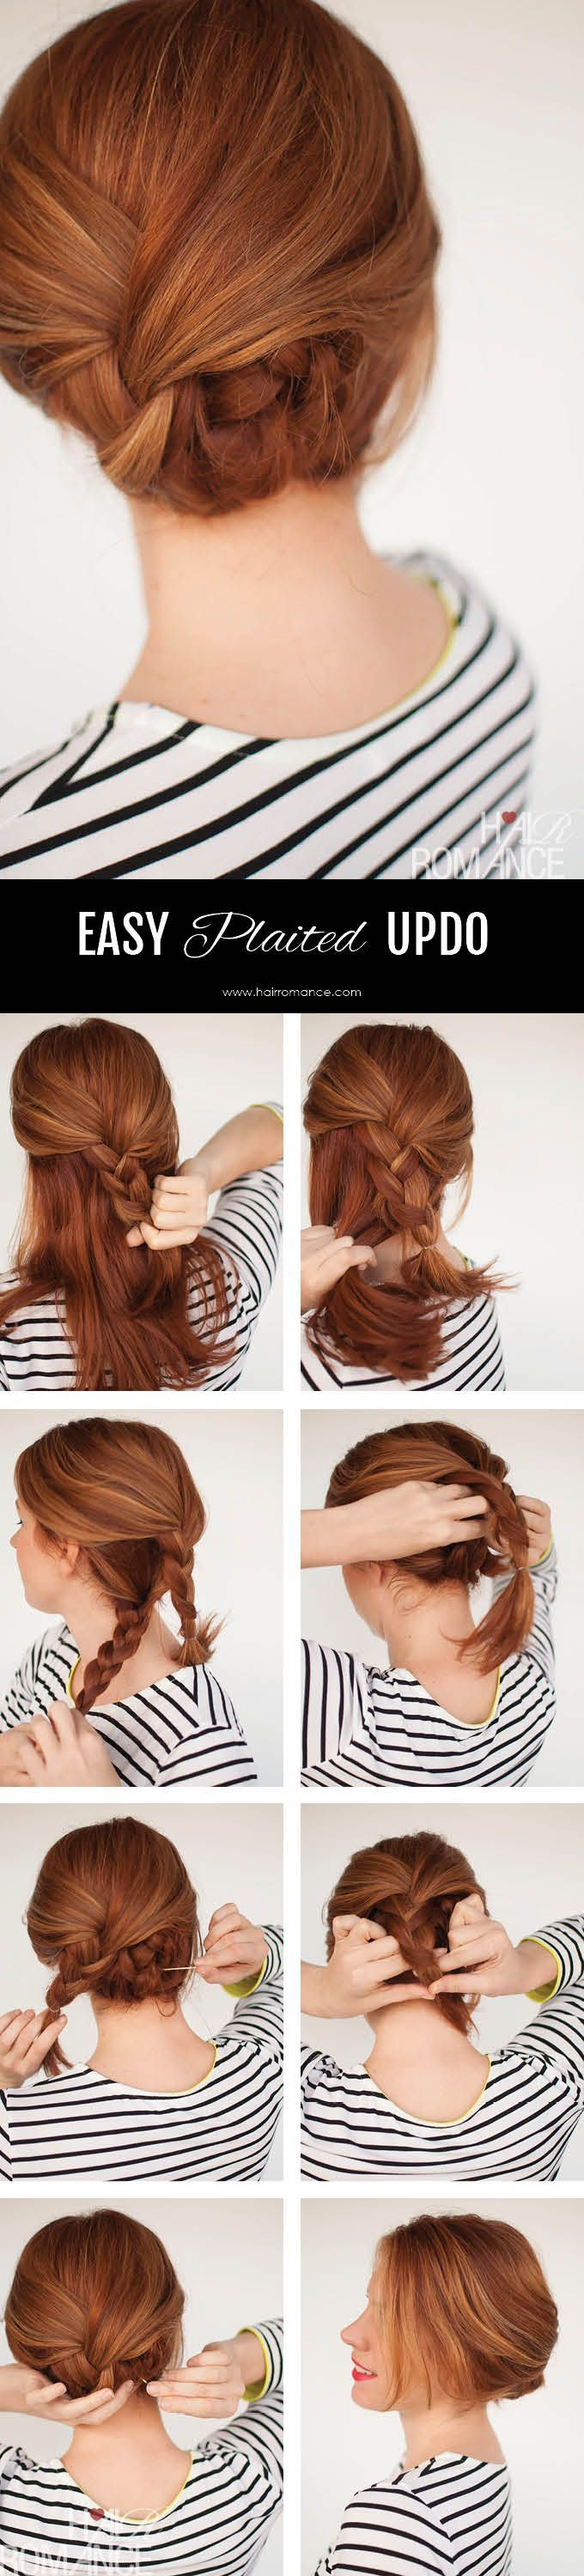 See More Hairstyle Ideas on pinmakeuptips.com...